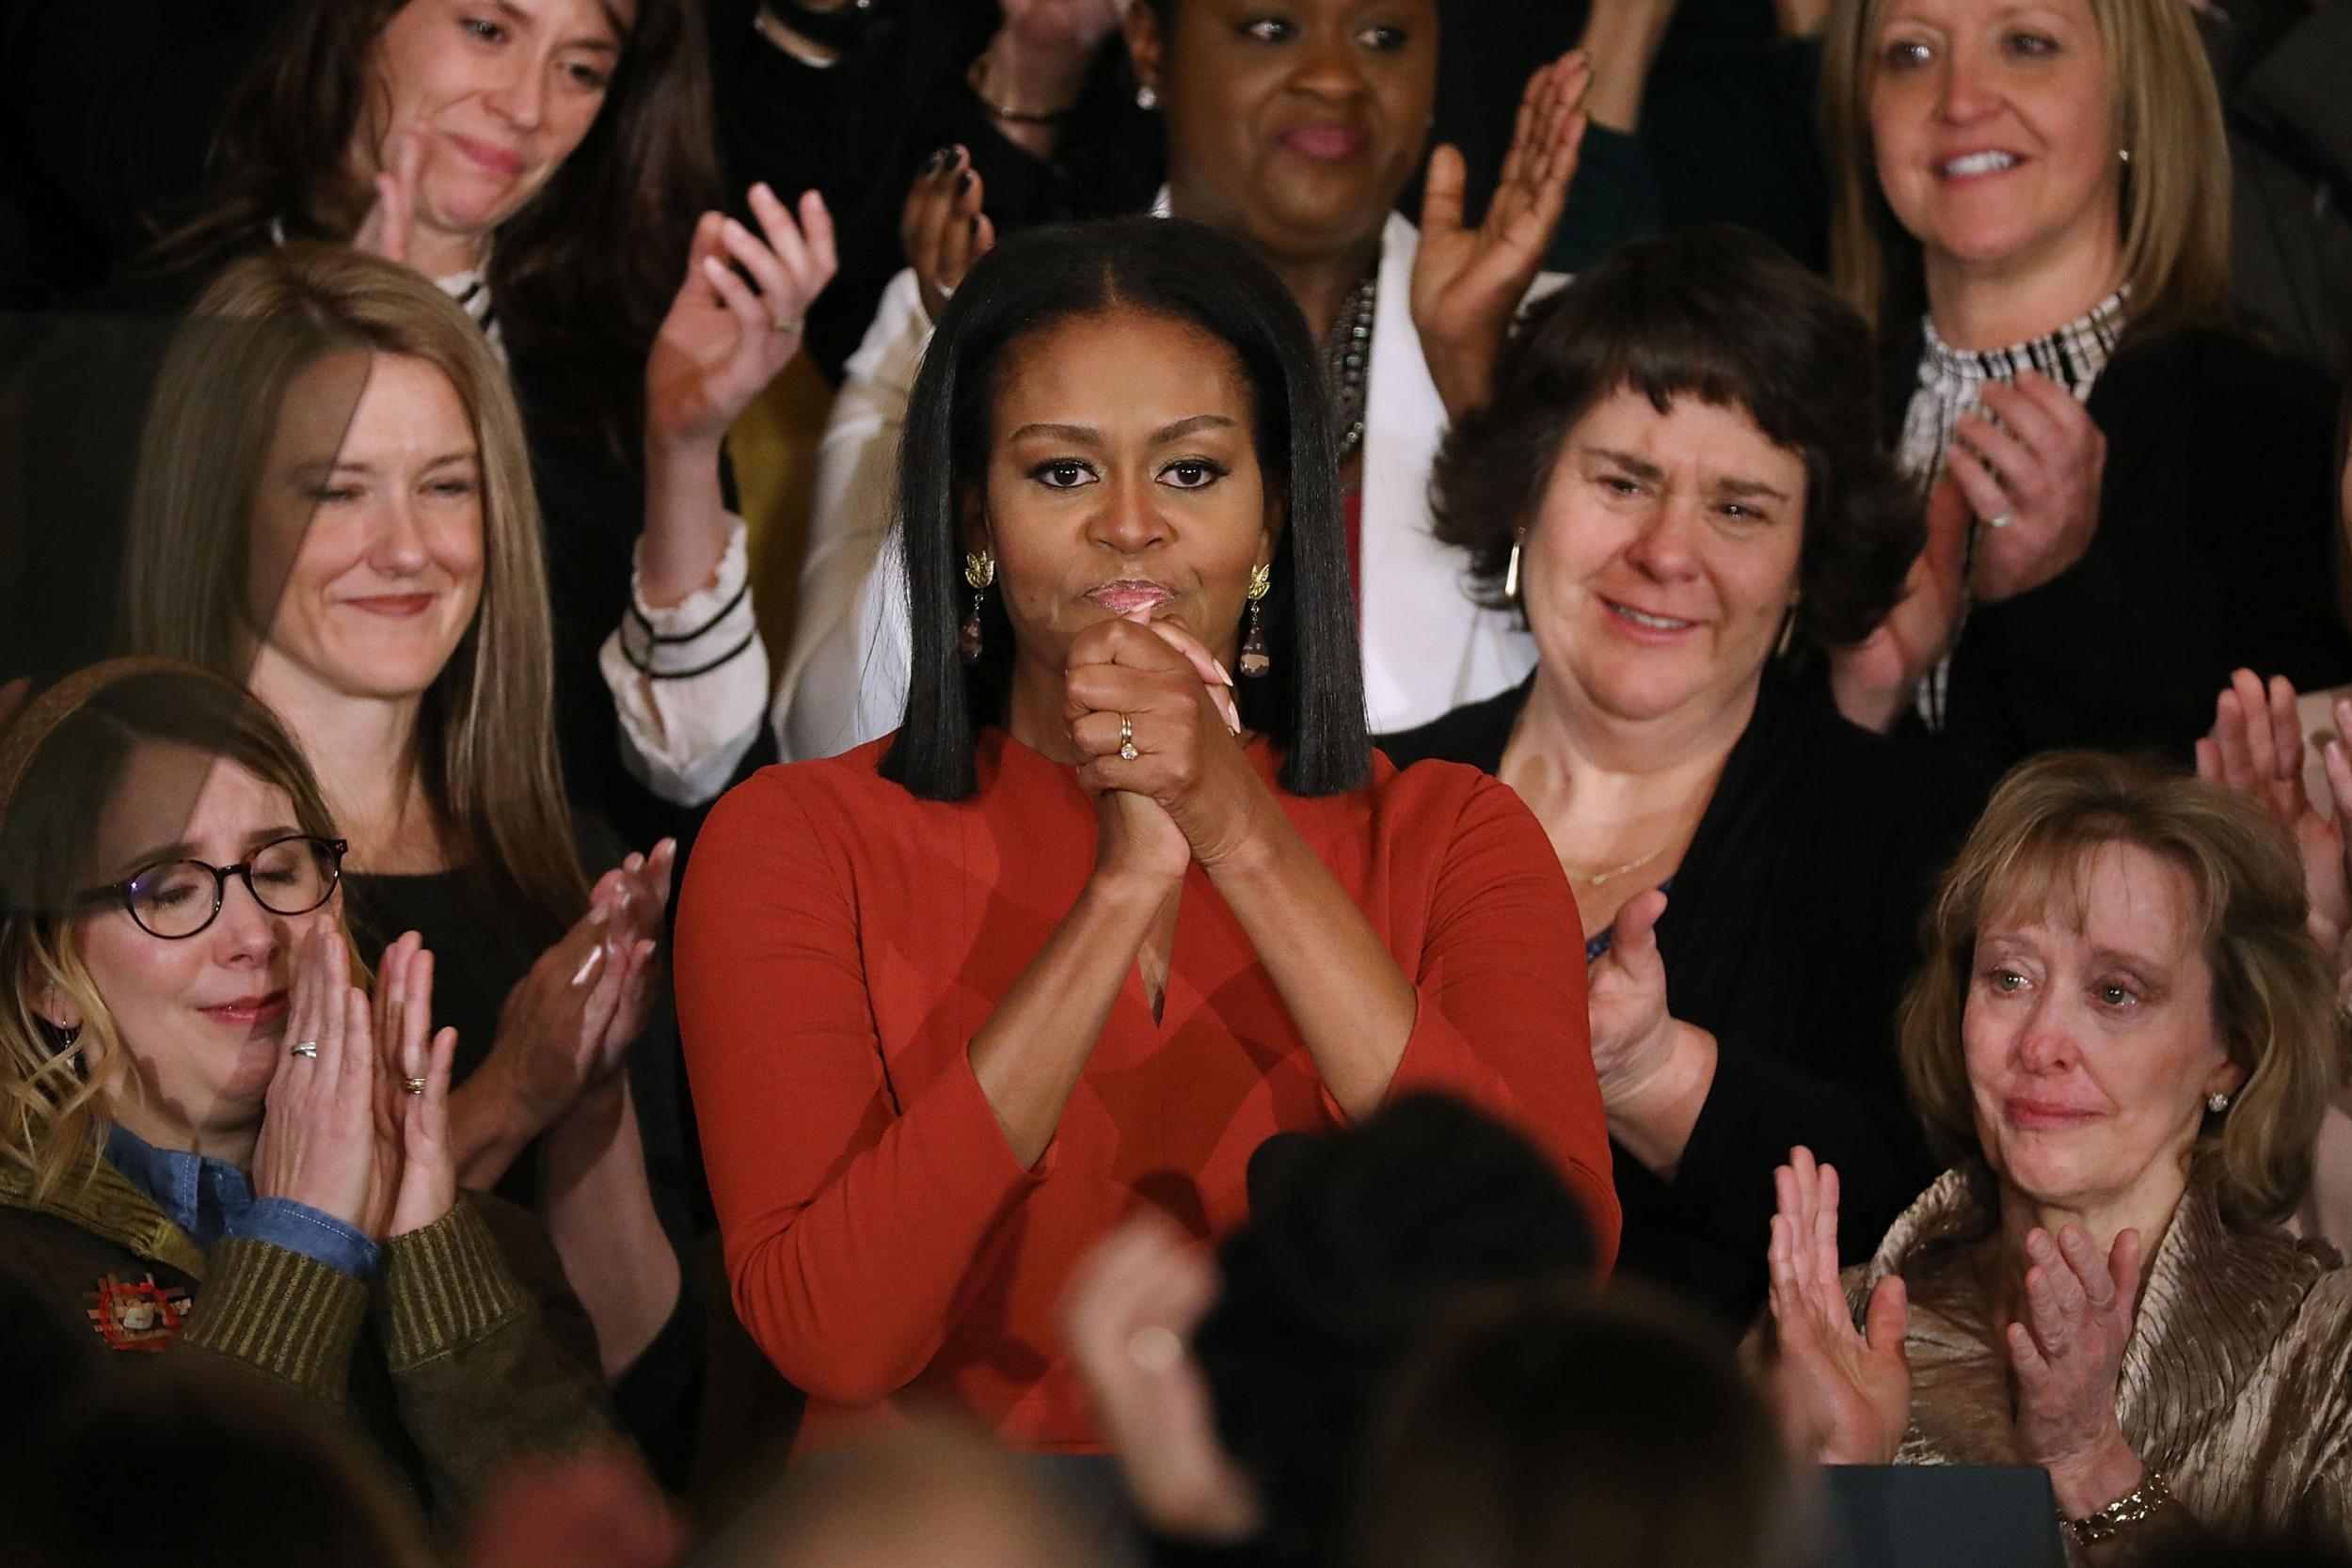 Michelle Obama opens up about racism she faced as First Lady in revealing interview